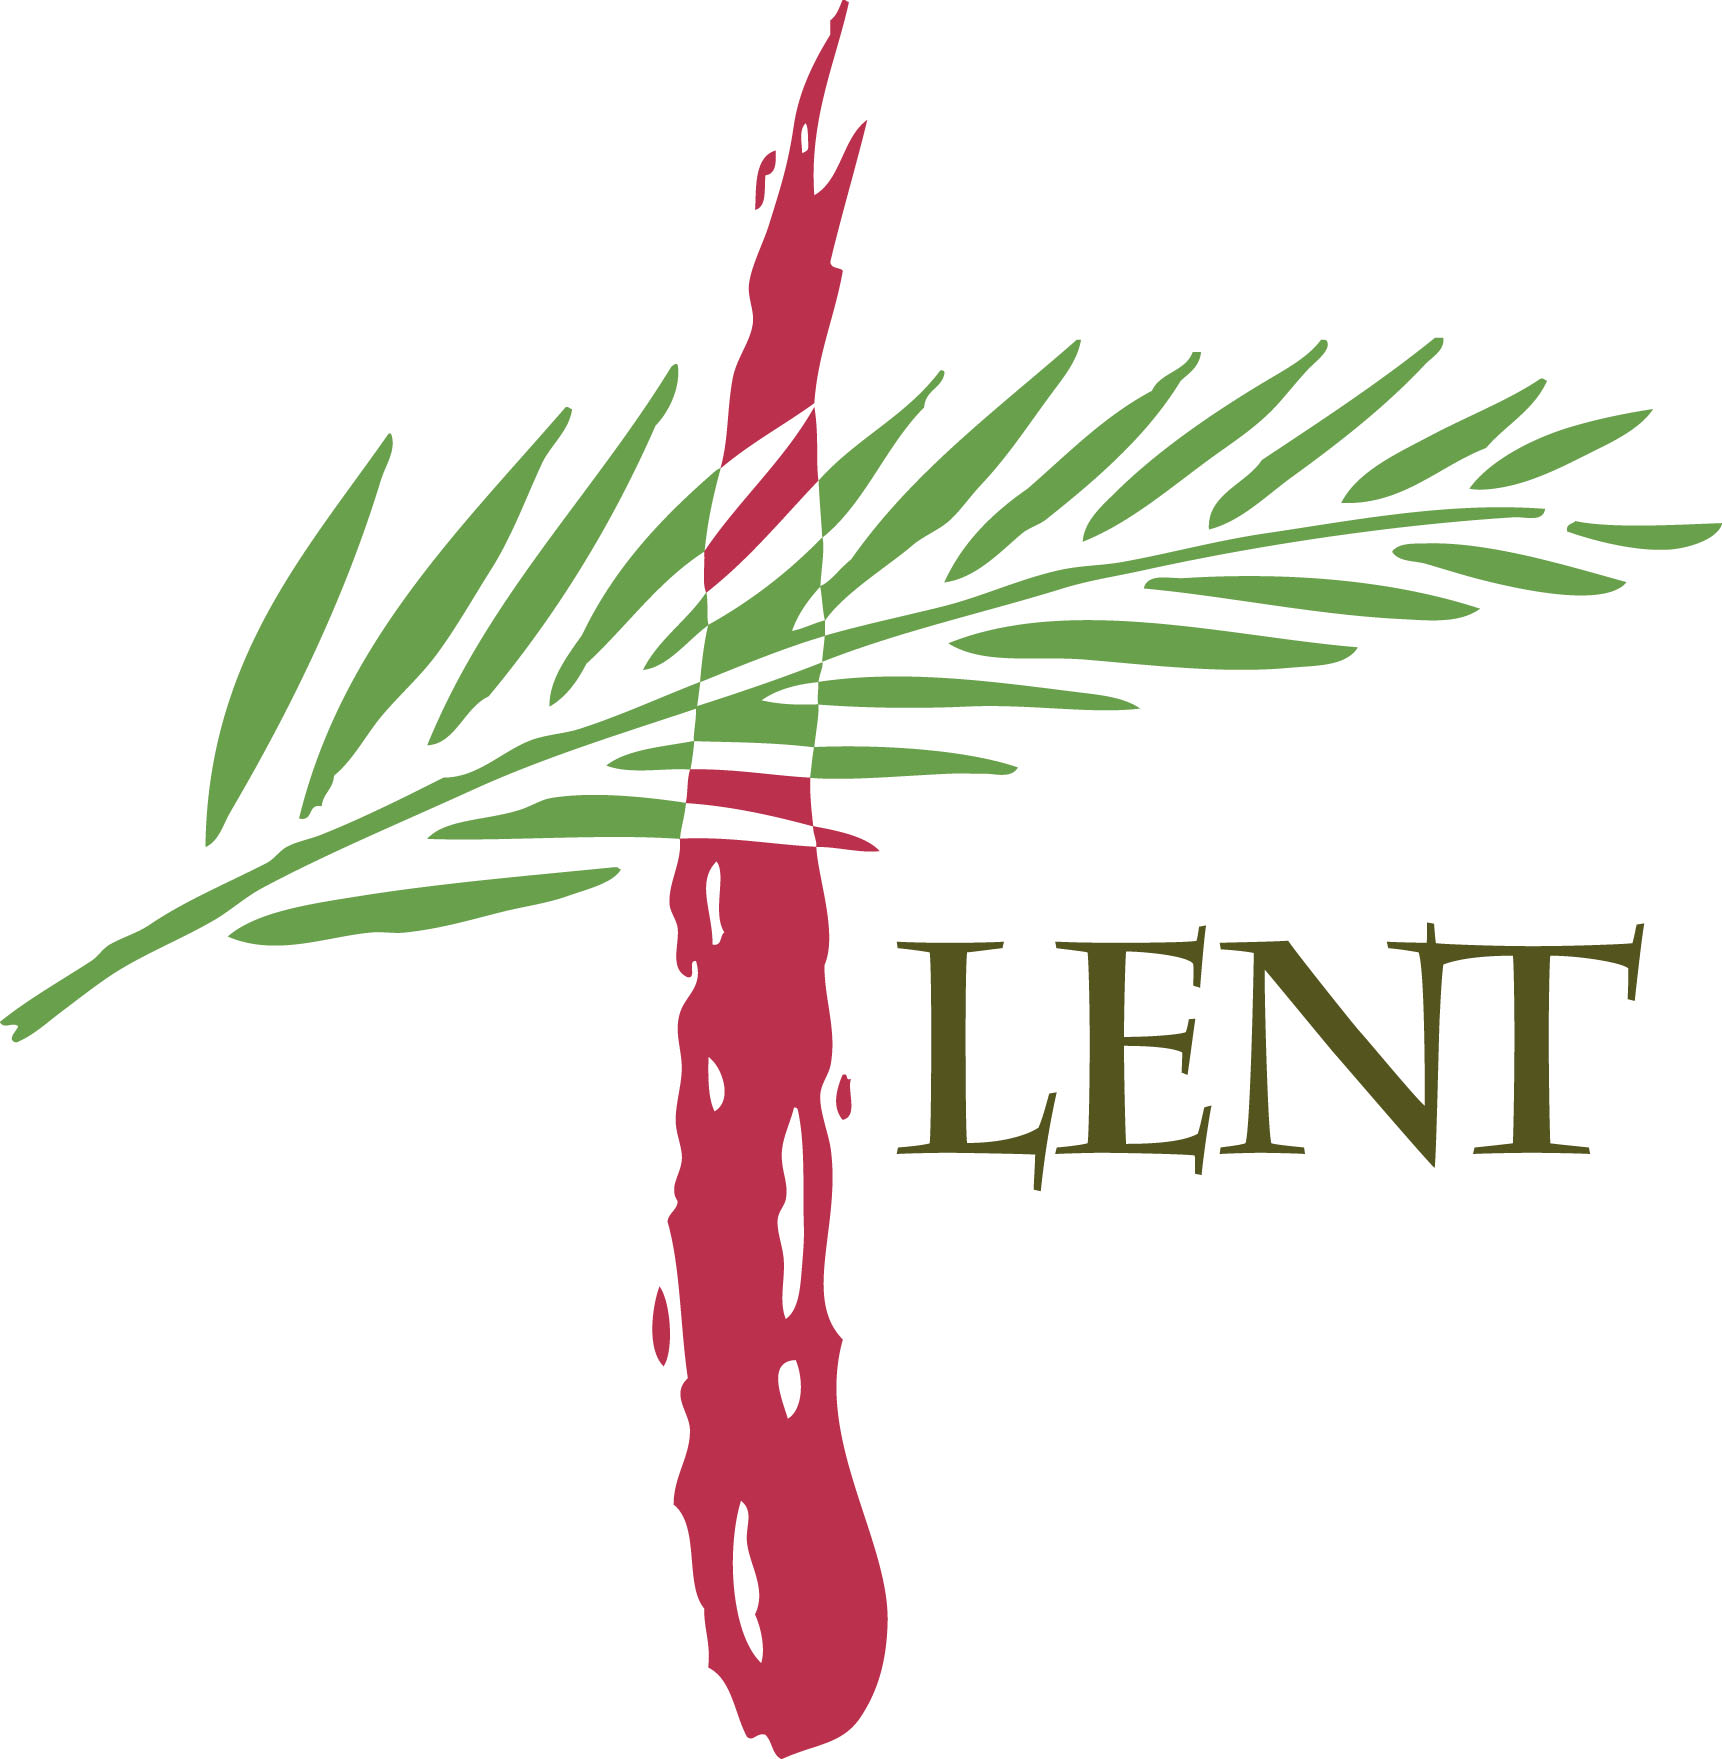 Lent clipart church bulletin. Free cliparts download clip